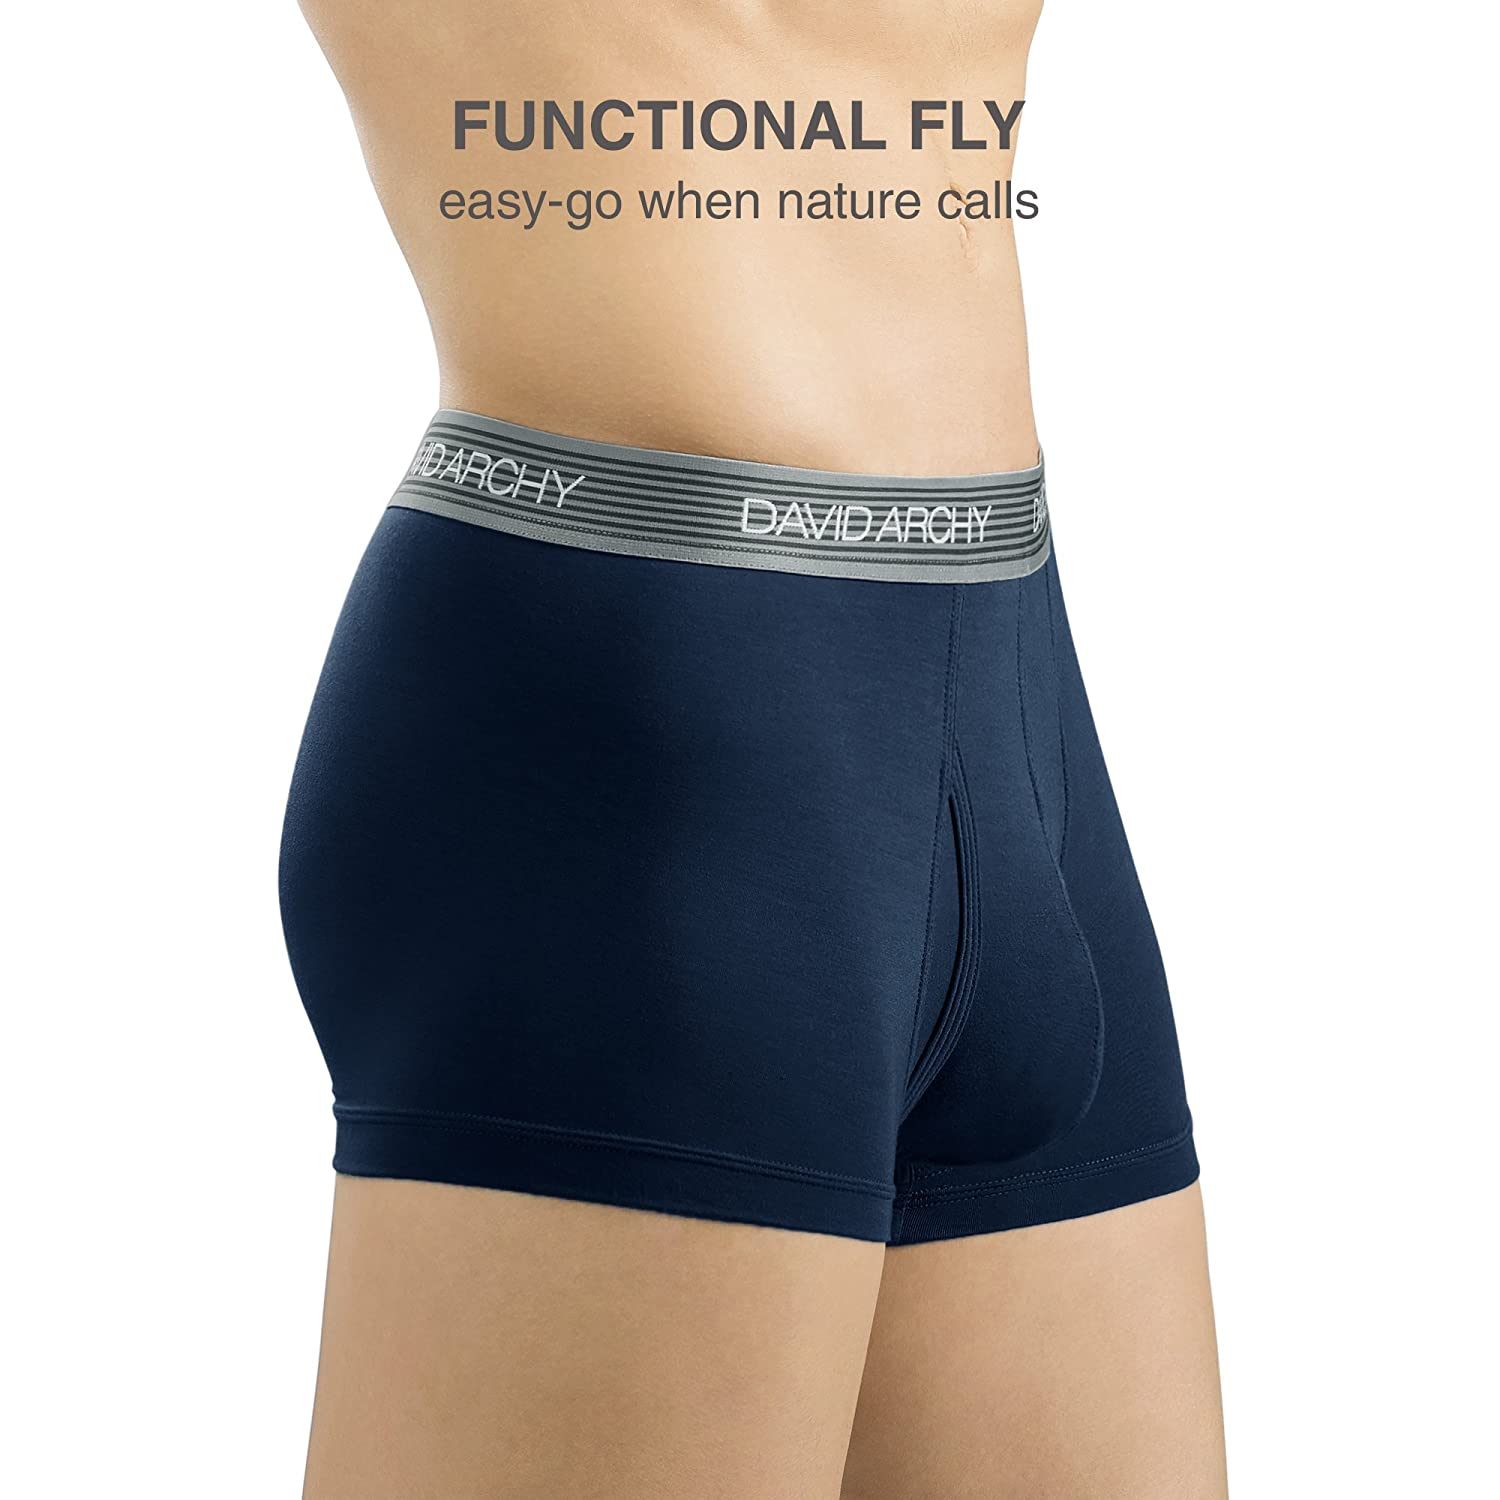 David Archy Mens 4 Pack Ultra Soft Micro Modal Underwear Breathable Trunks with Fly